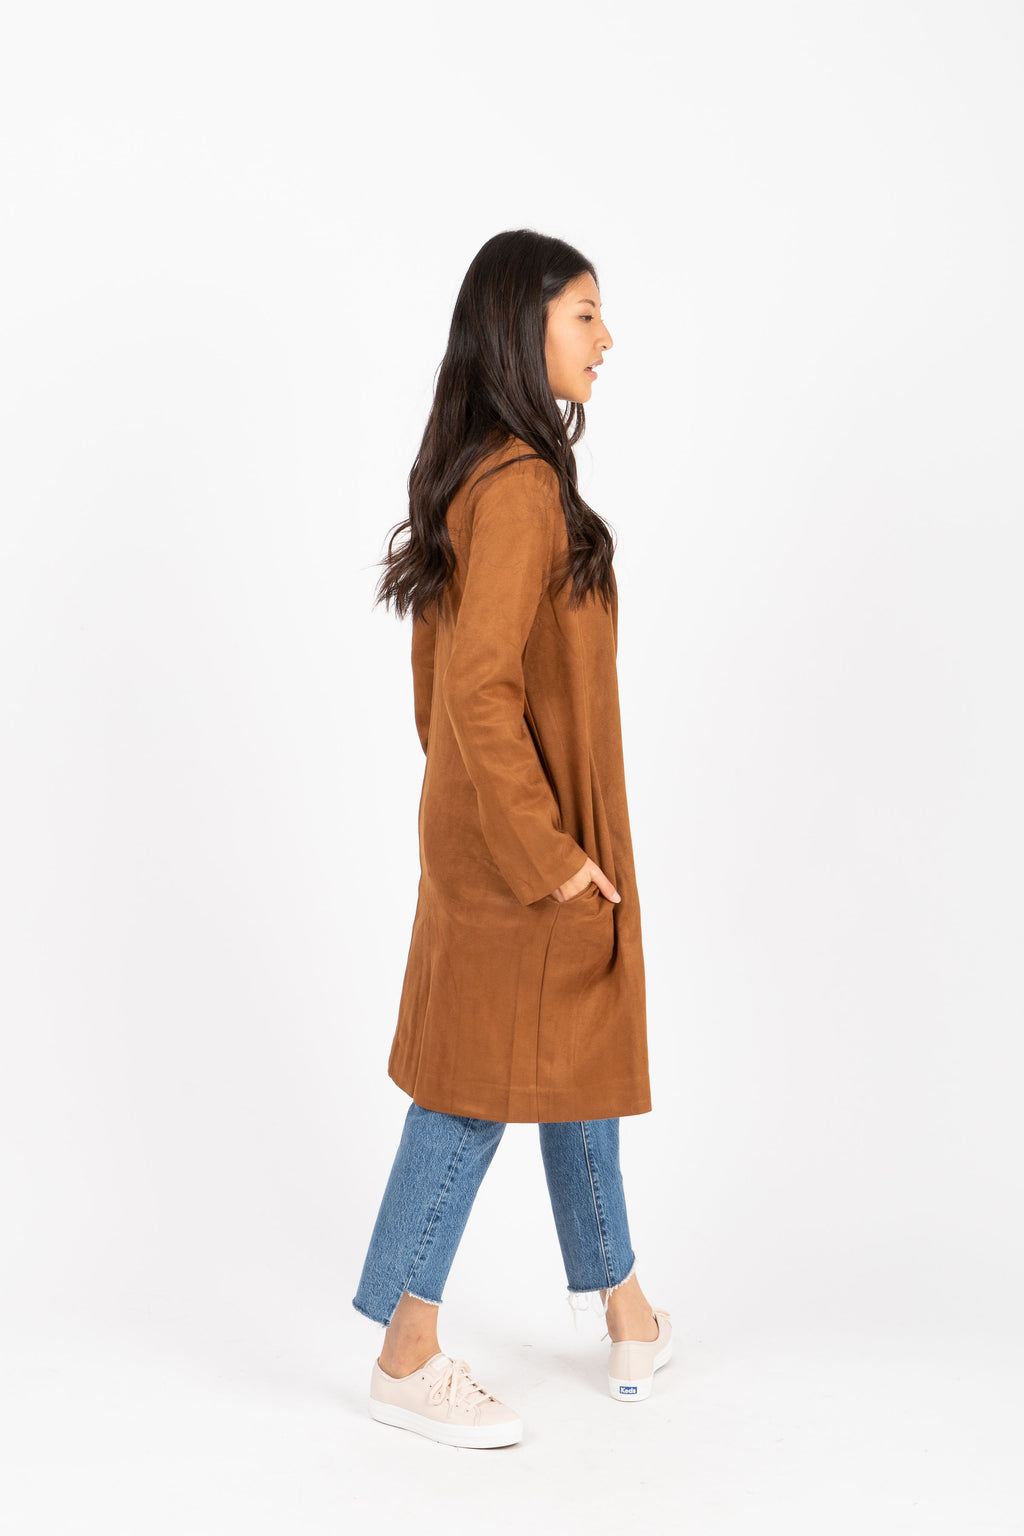 The Whalen Suede Cardigan in Saddle, studio shoot; side view